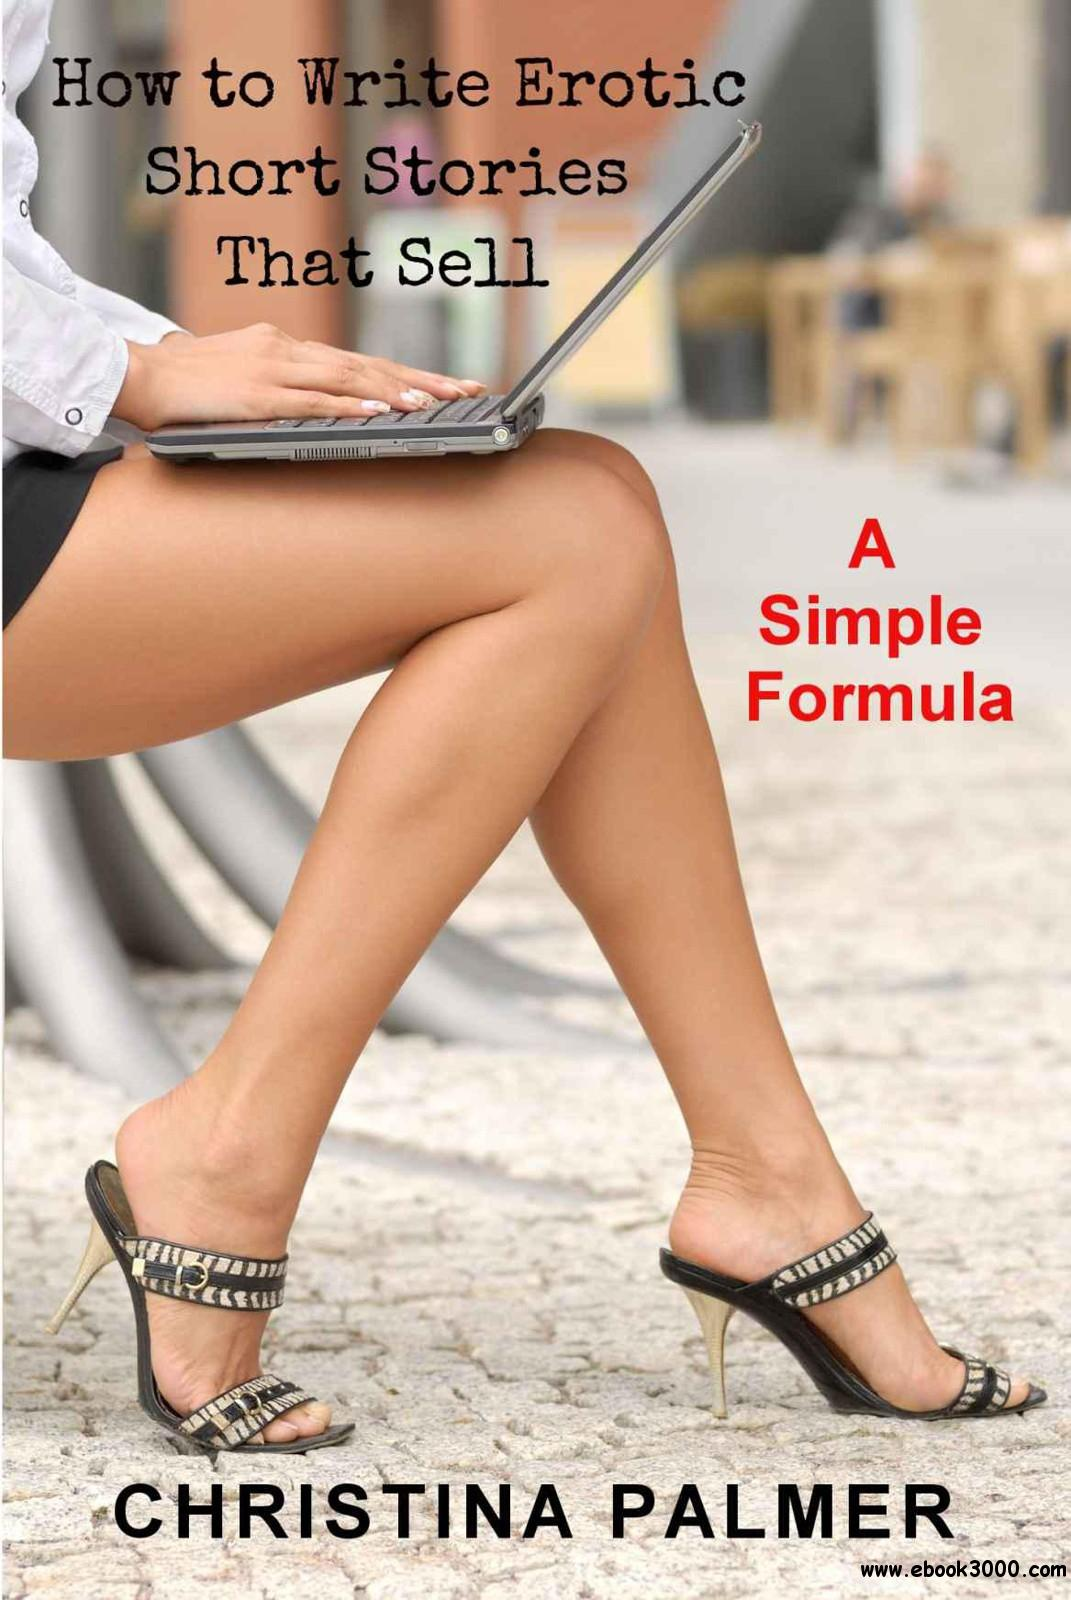 How to Write Erotic Short Stories that Sell: A Simple Formula free download